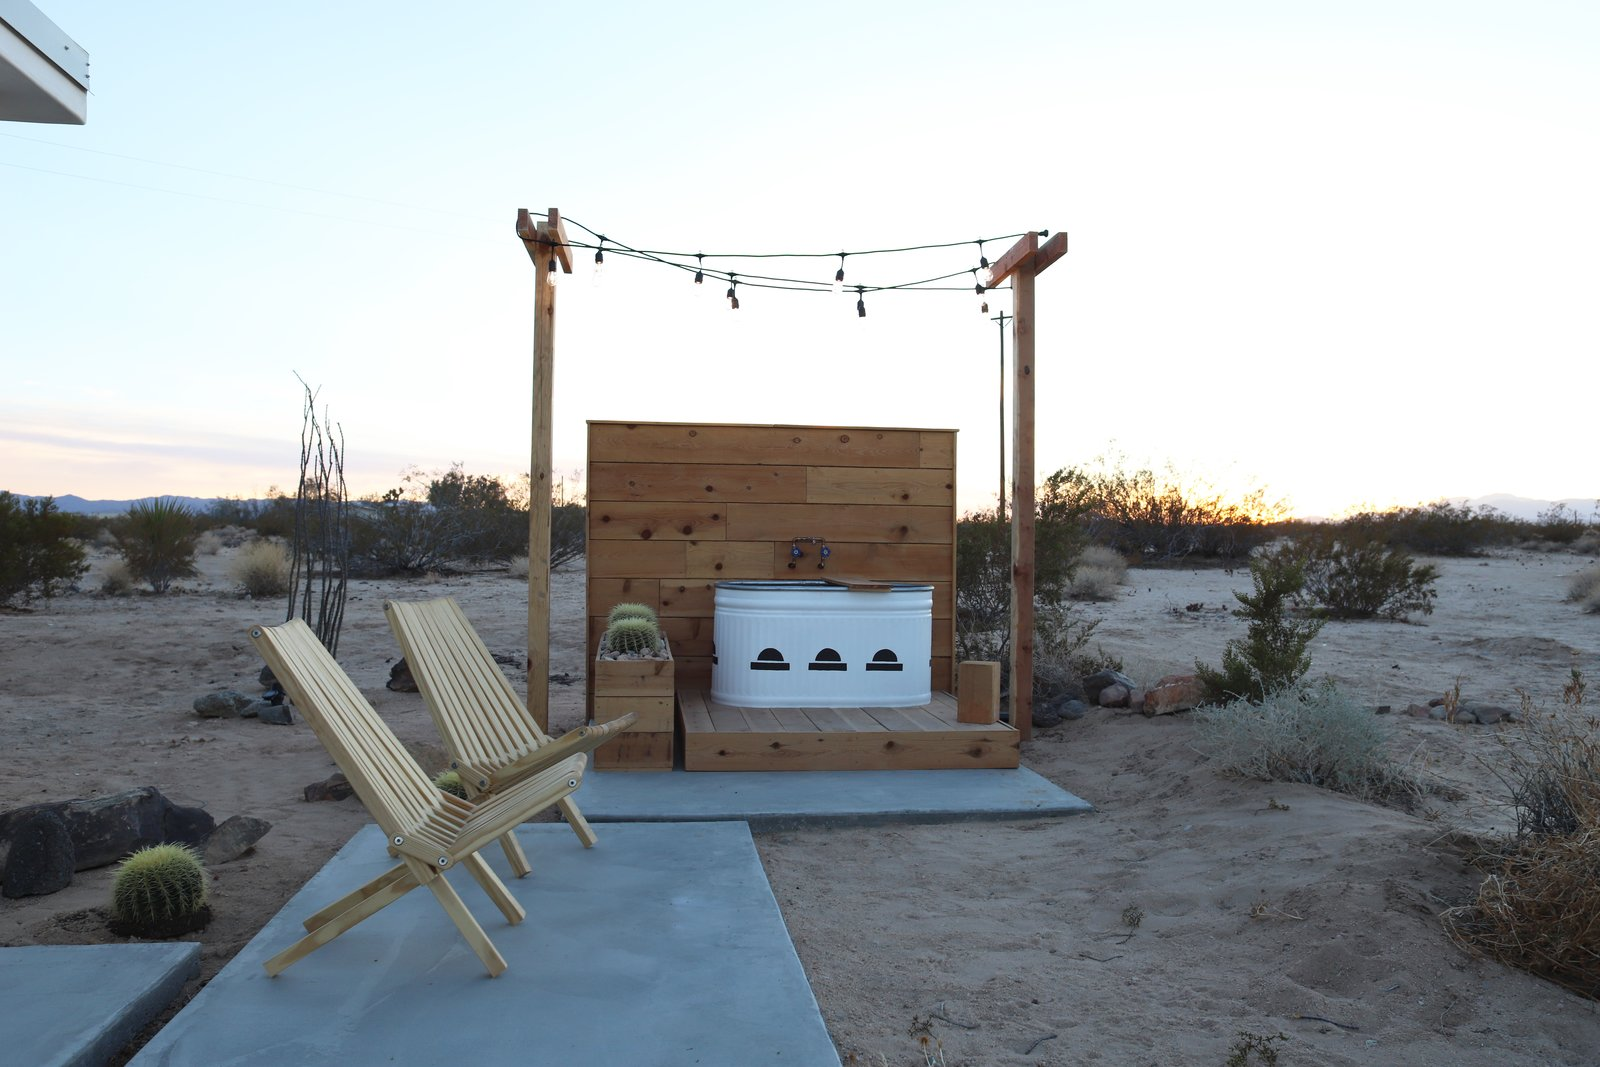 Outdoor, Desert, Small, Concrete, Shrubs, Back Yard, Plunge, Horizontal, Hanging, Wood, and Hot Tub The addition of an alfresco tub is perfect for relaxing on starry desert evenings.  Outdoor Concrete Plunge Small Photos from A Couple Buy a Collapsing Cabin For $7K in Joshua Tree and Revamp it Into a Desert Oasis